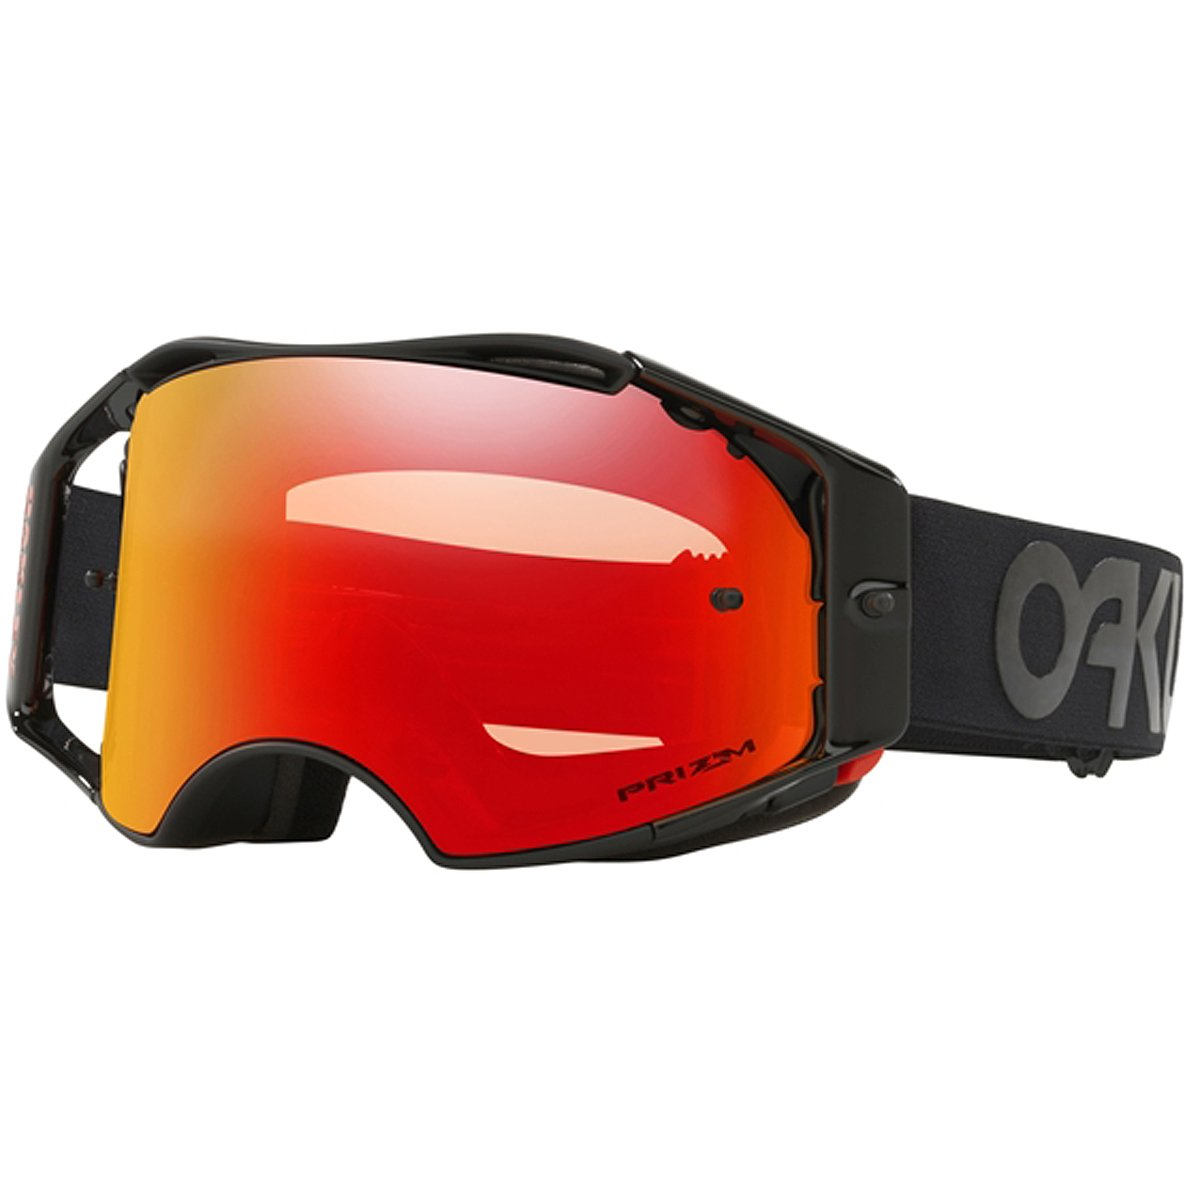 Oakley ABMX FP Blackout with Prizm MX Torch unisex-adult Goggles (Black, Medium), 1 Pack